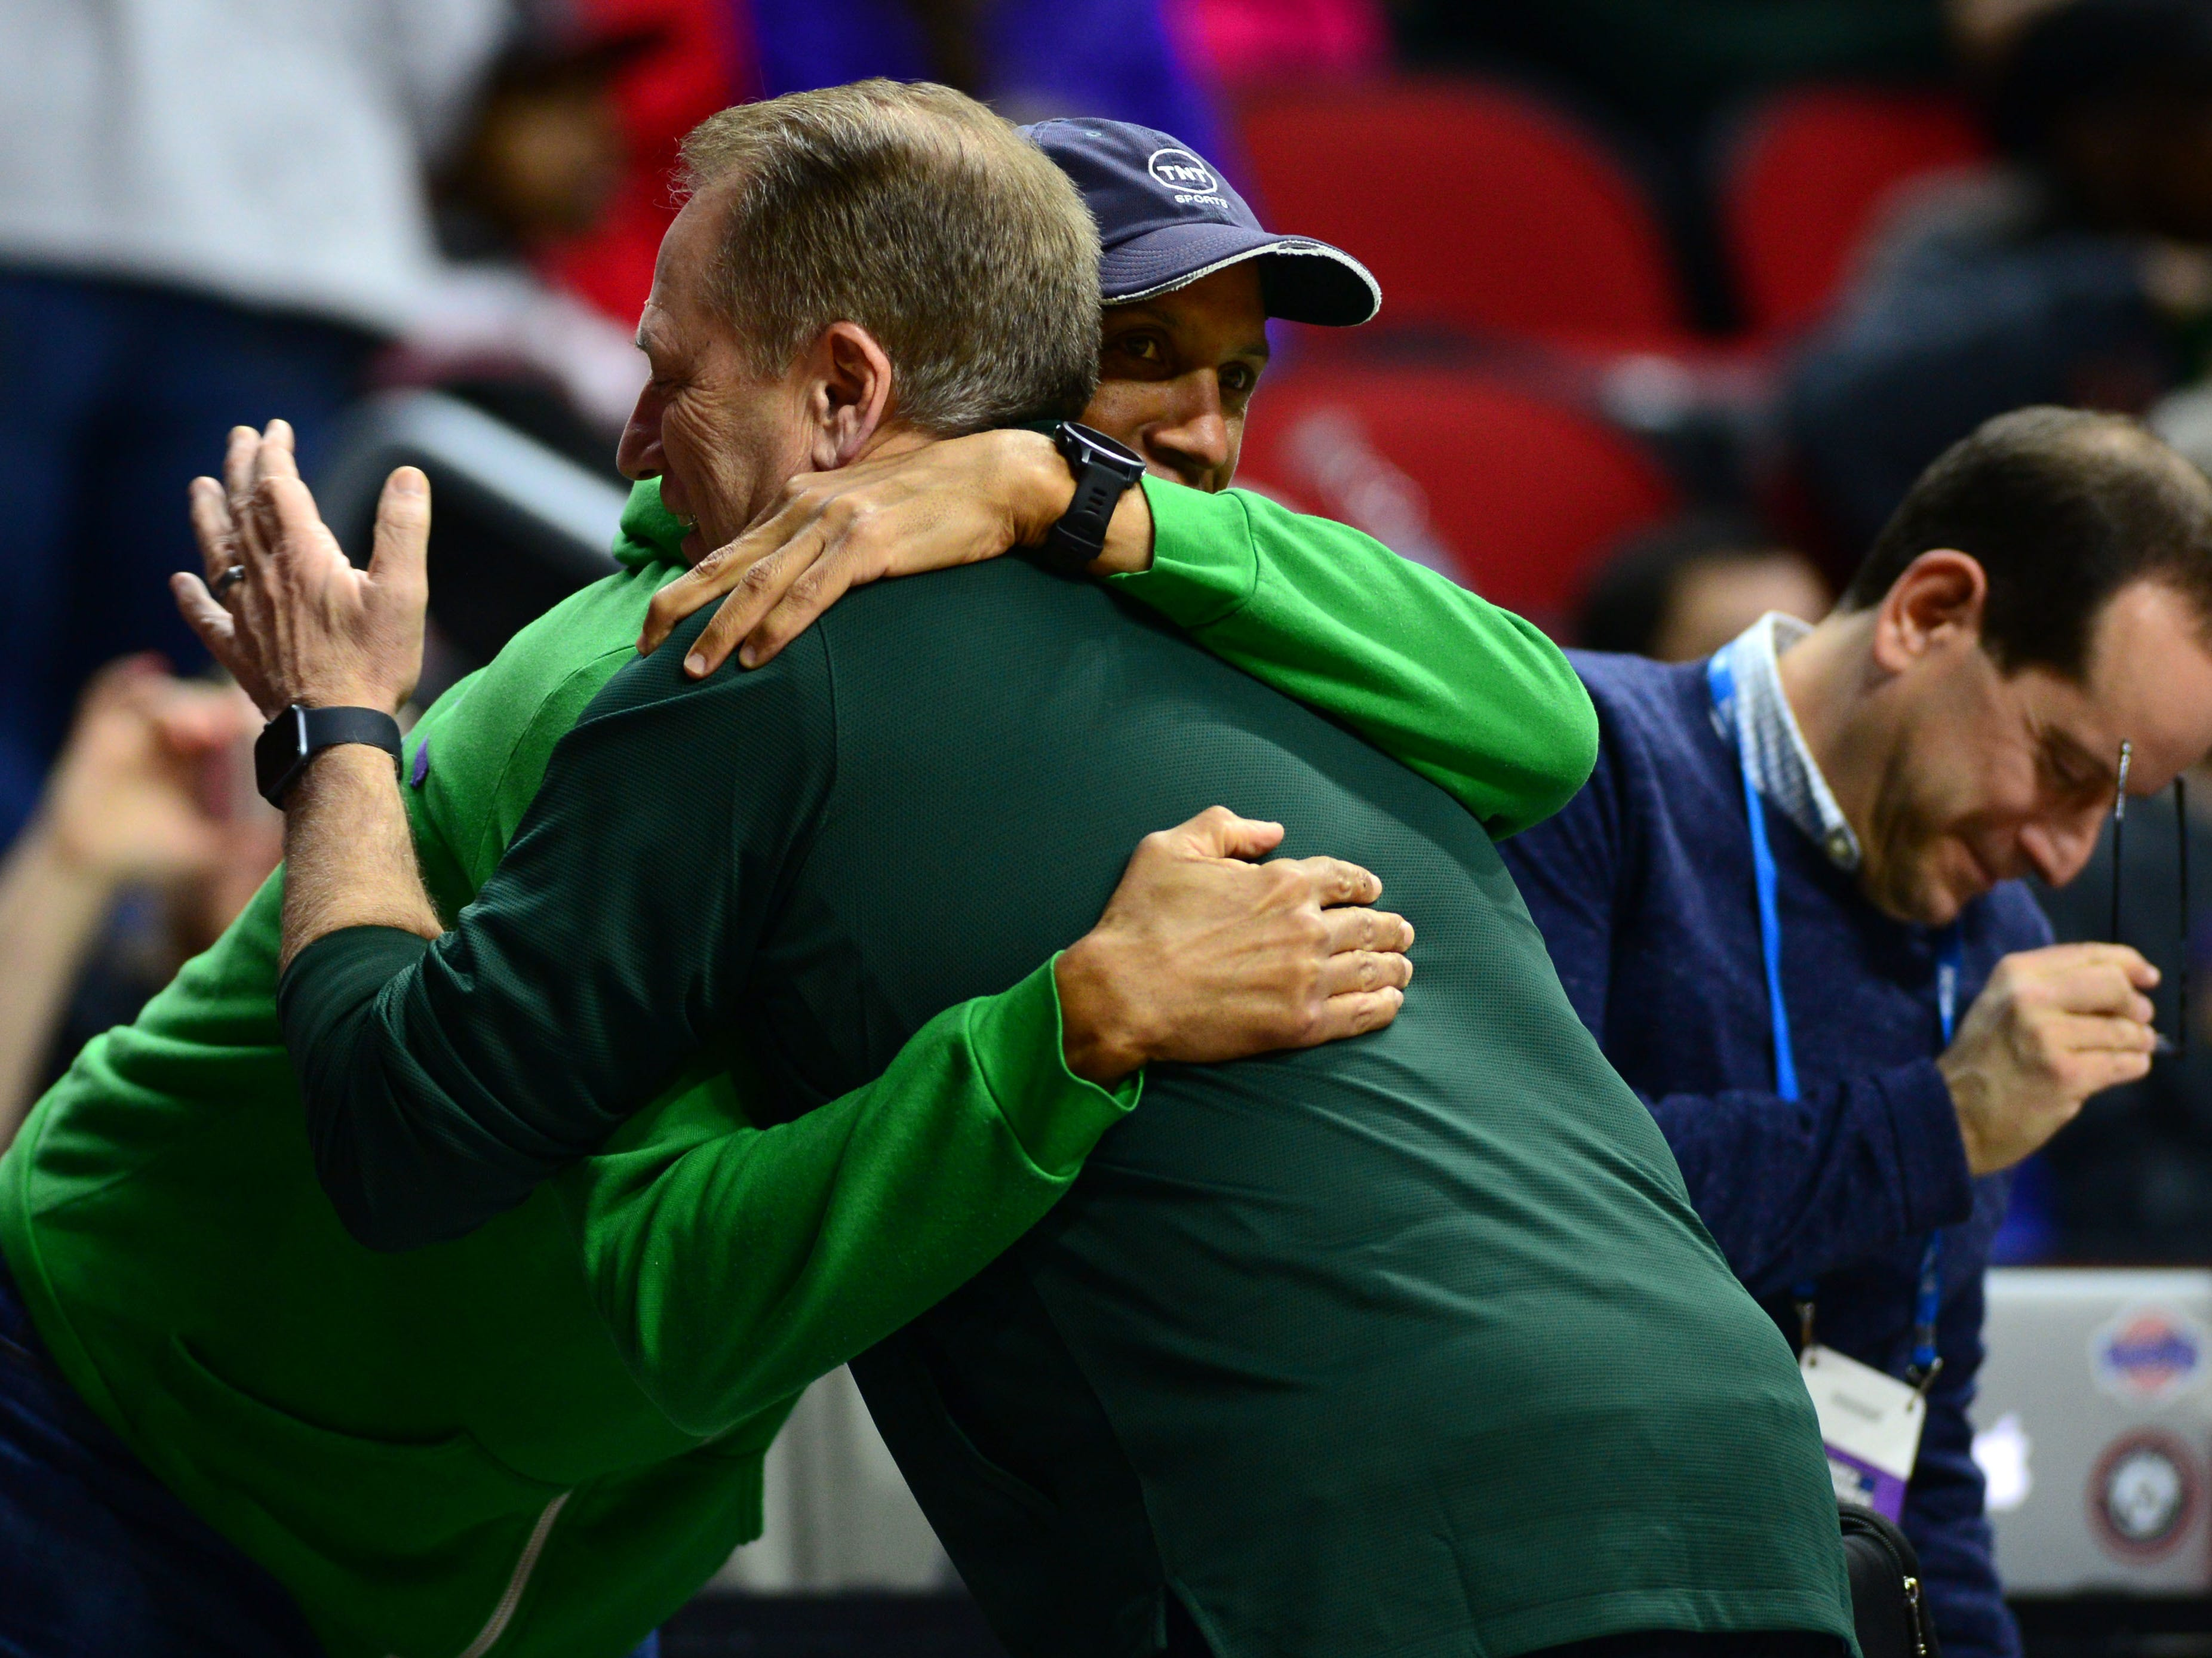 Mar 20, 2019; Des Moines, IA, USA; Michigan State Spartans head coach Tom Izzo hugs TNT analyst Reggie Miller during practice before the first round of the 2019 NCAA Tournament at Wells Fargo Arena. Mandatory Credit: Jeffery Becker-USA TODAY Sports